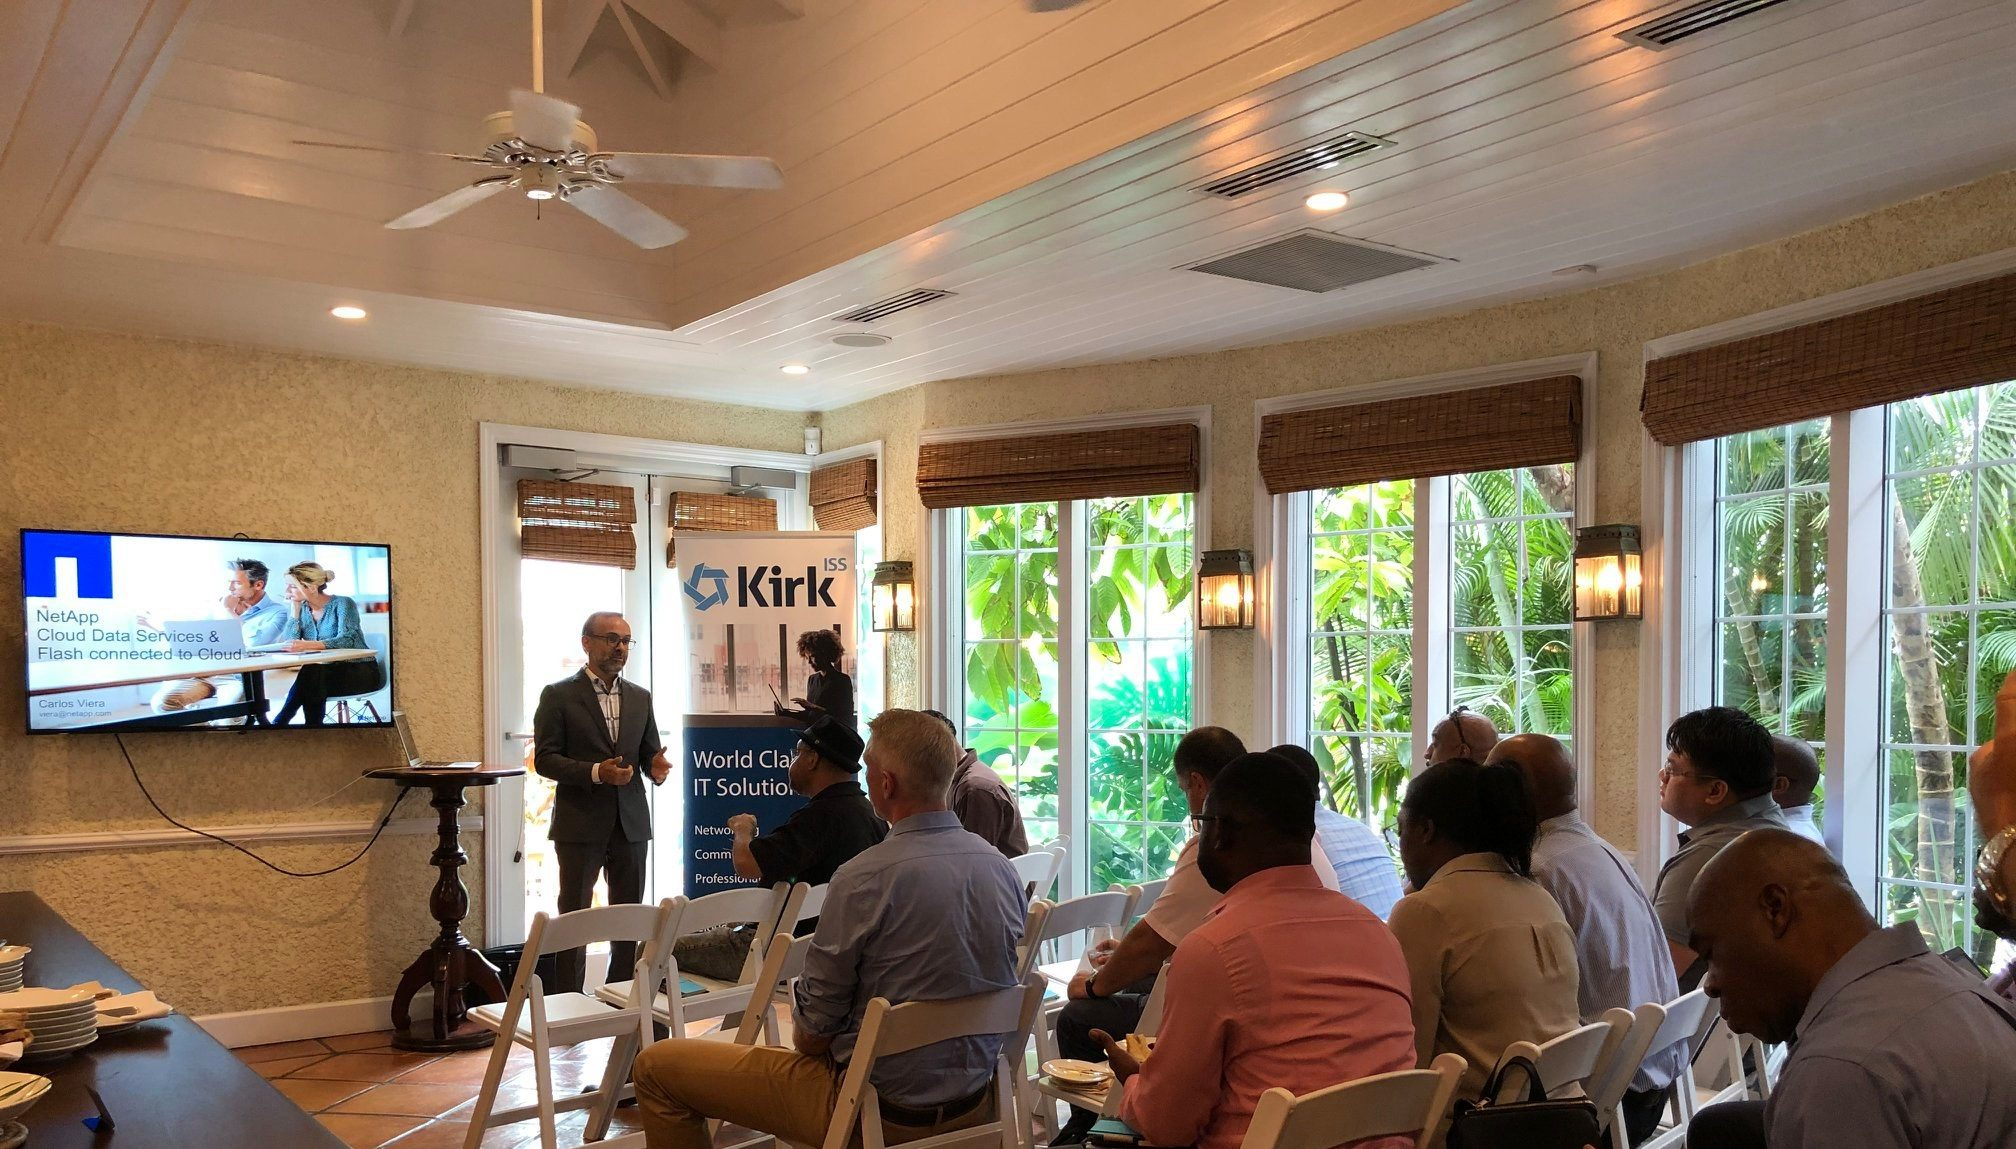 Carlos Viera of NetApp speaking at a recent Information Technology Lunch and Learn